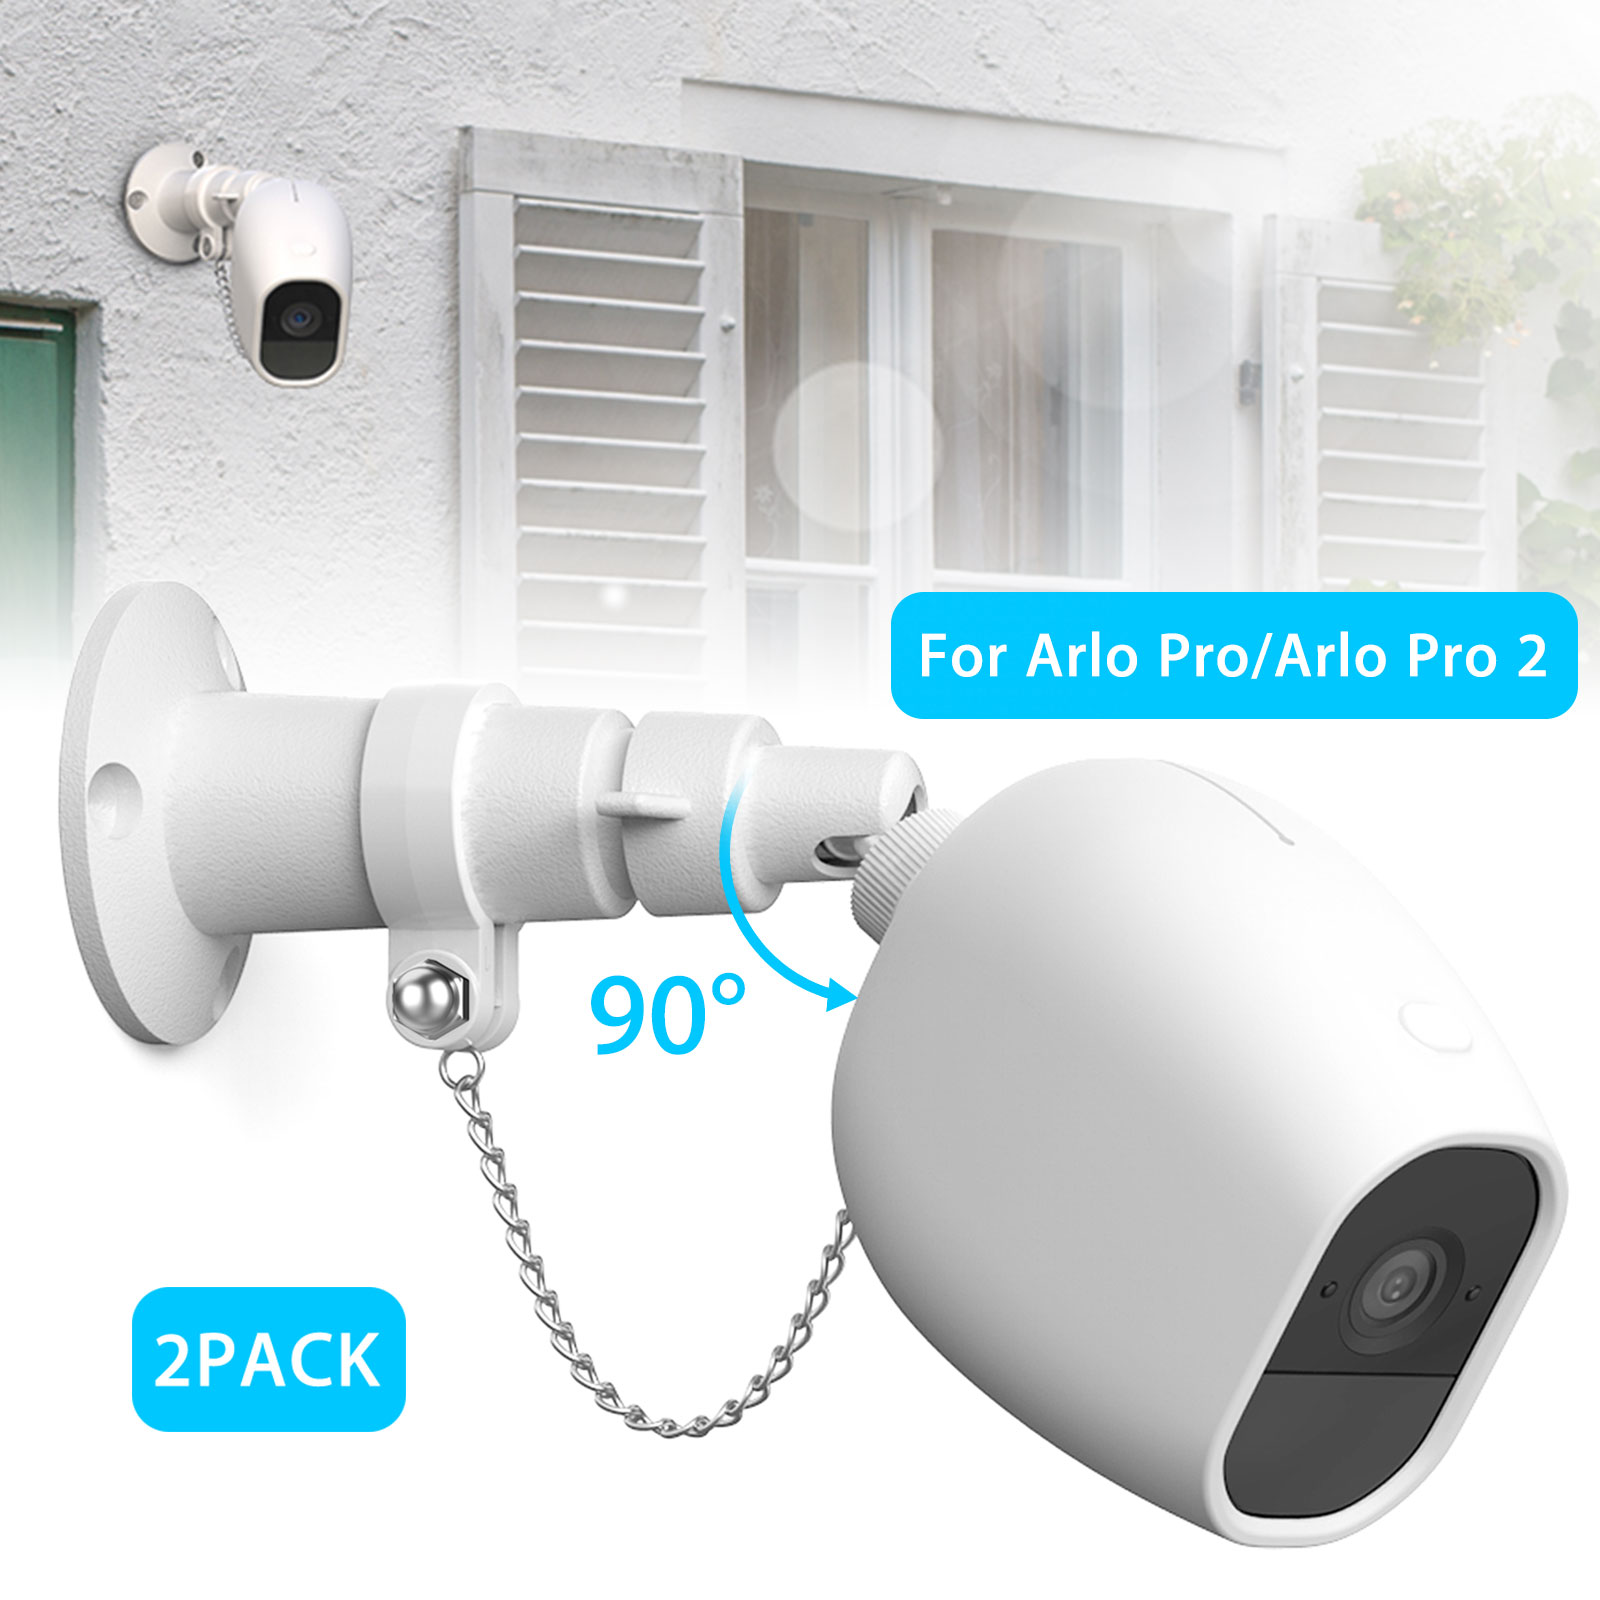 Anti-Theft-Security-Chain-for-Arlo-Pro-Arlo-Pro-2-Wall-Mount-Silicone-1-2-3pcs thumbnail 11